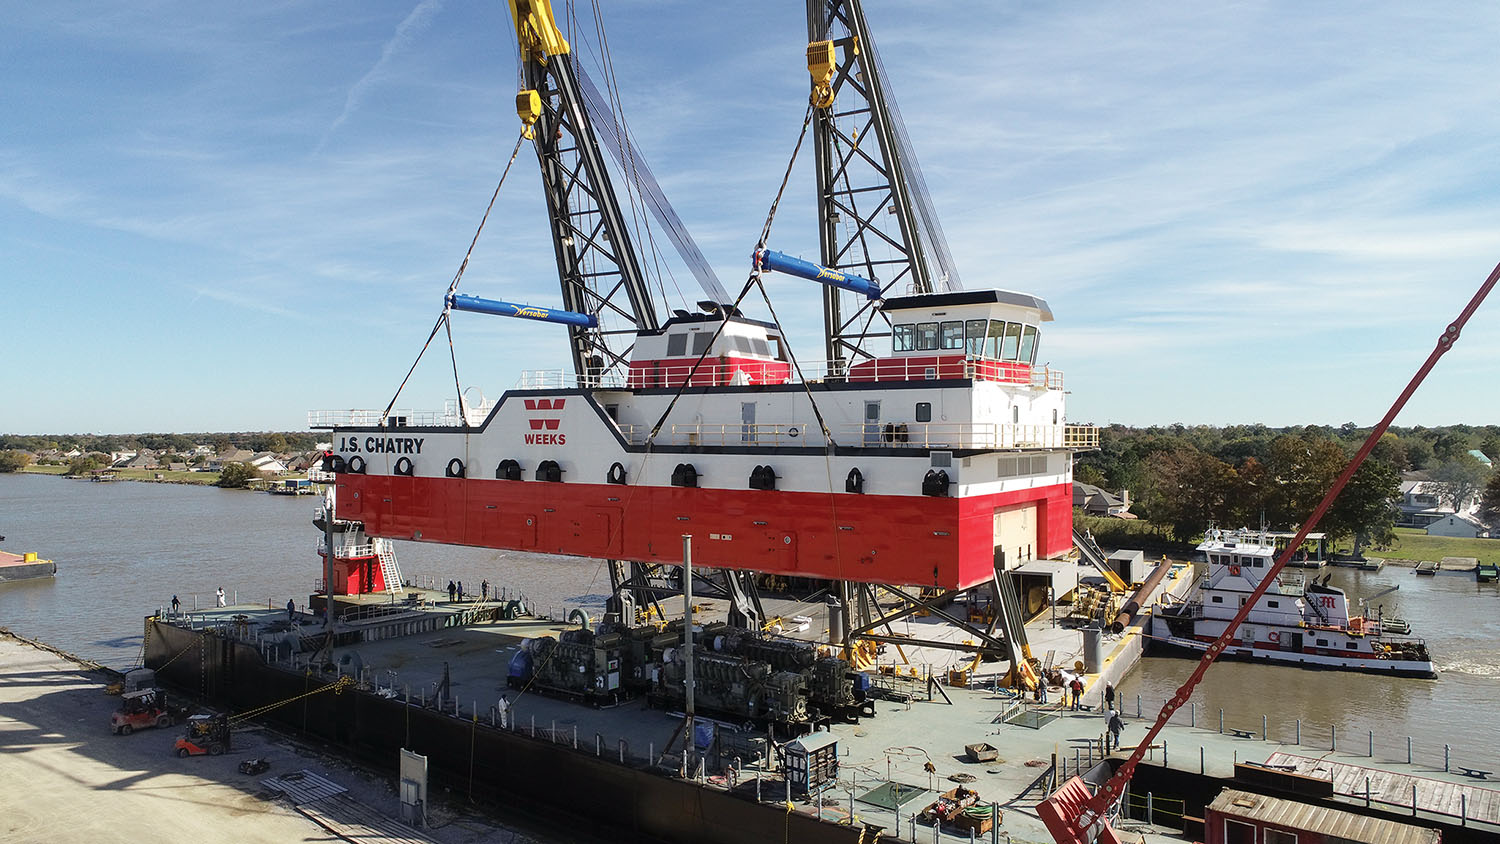 C&C Places Superstructure On Forthcoming Weeks Dredge